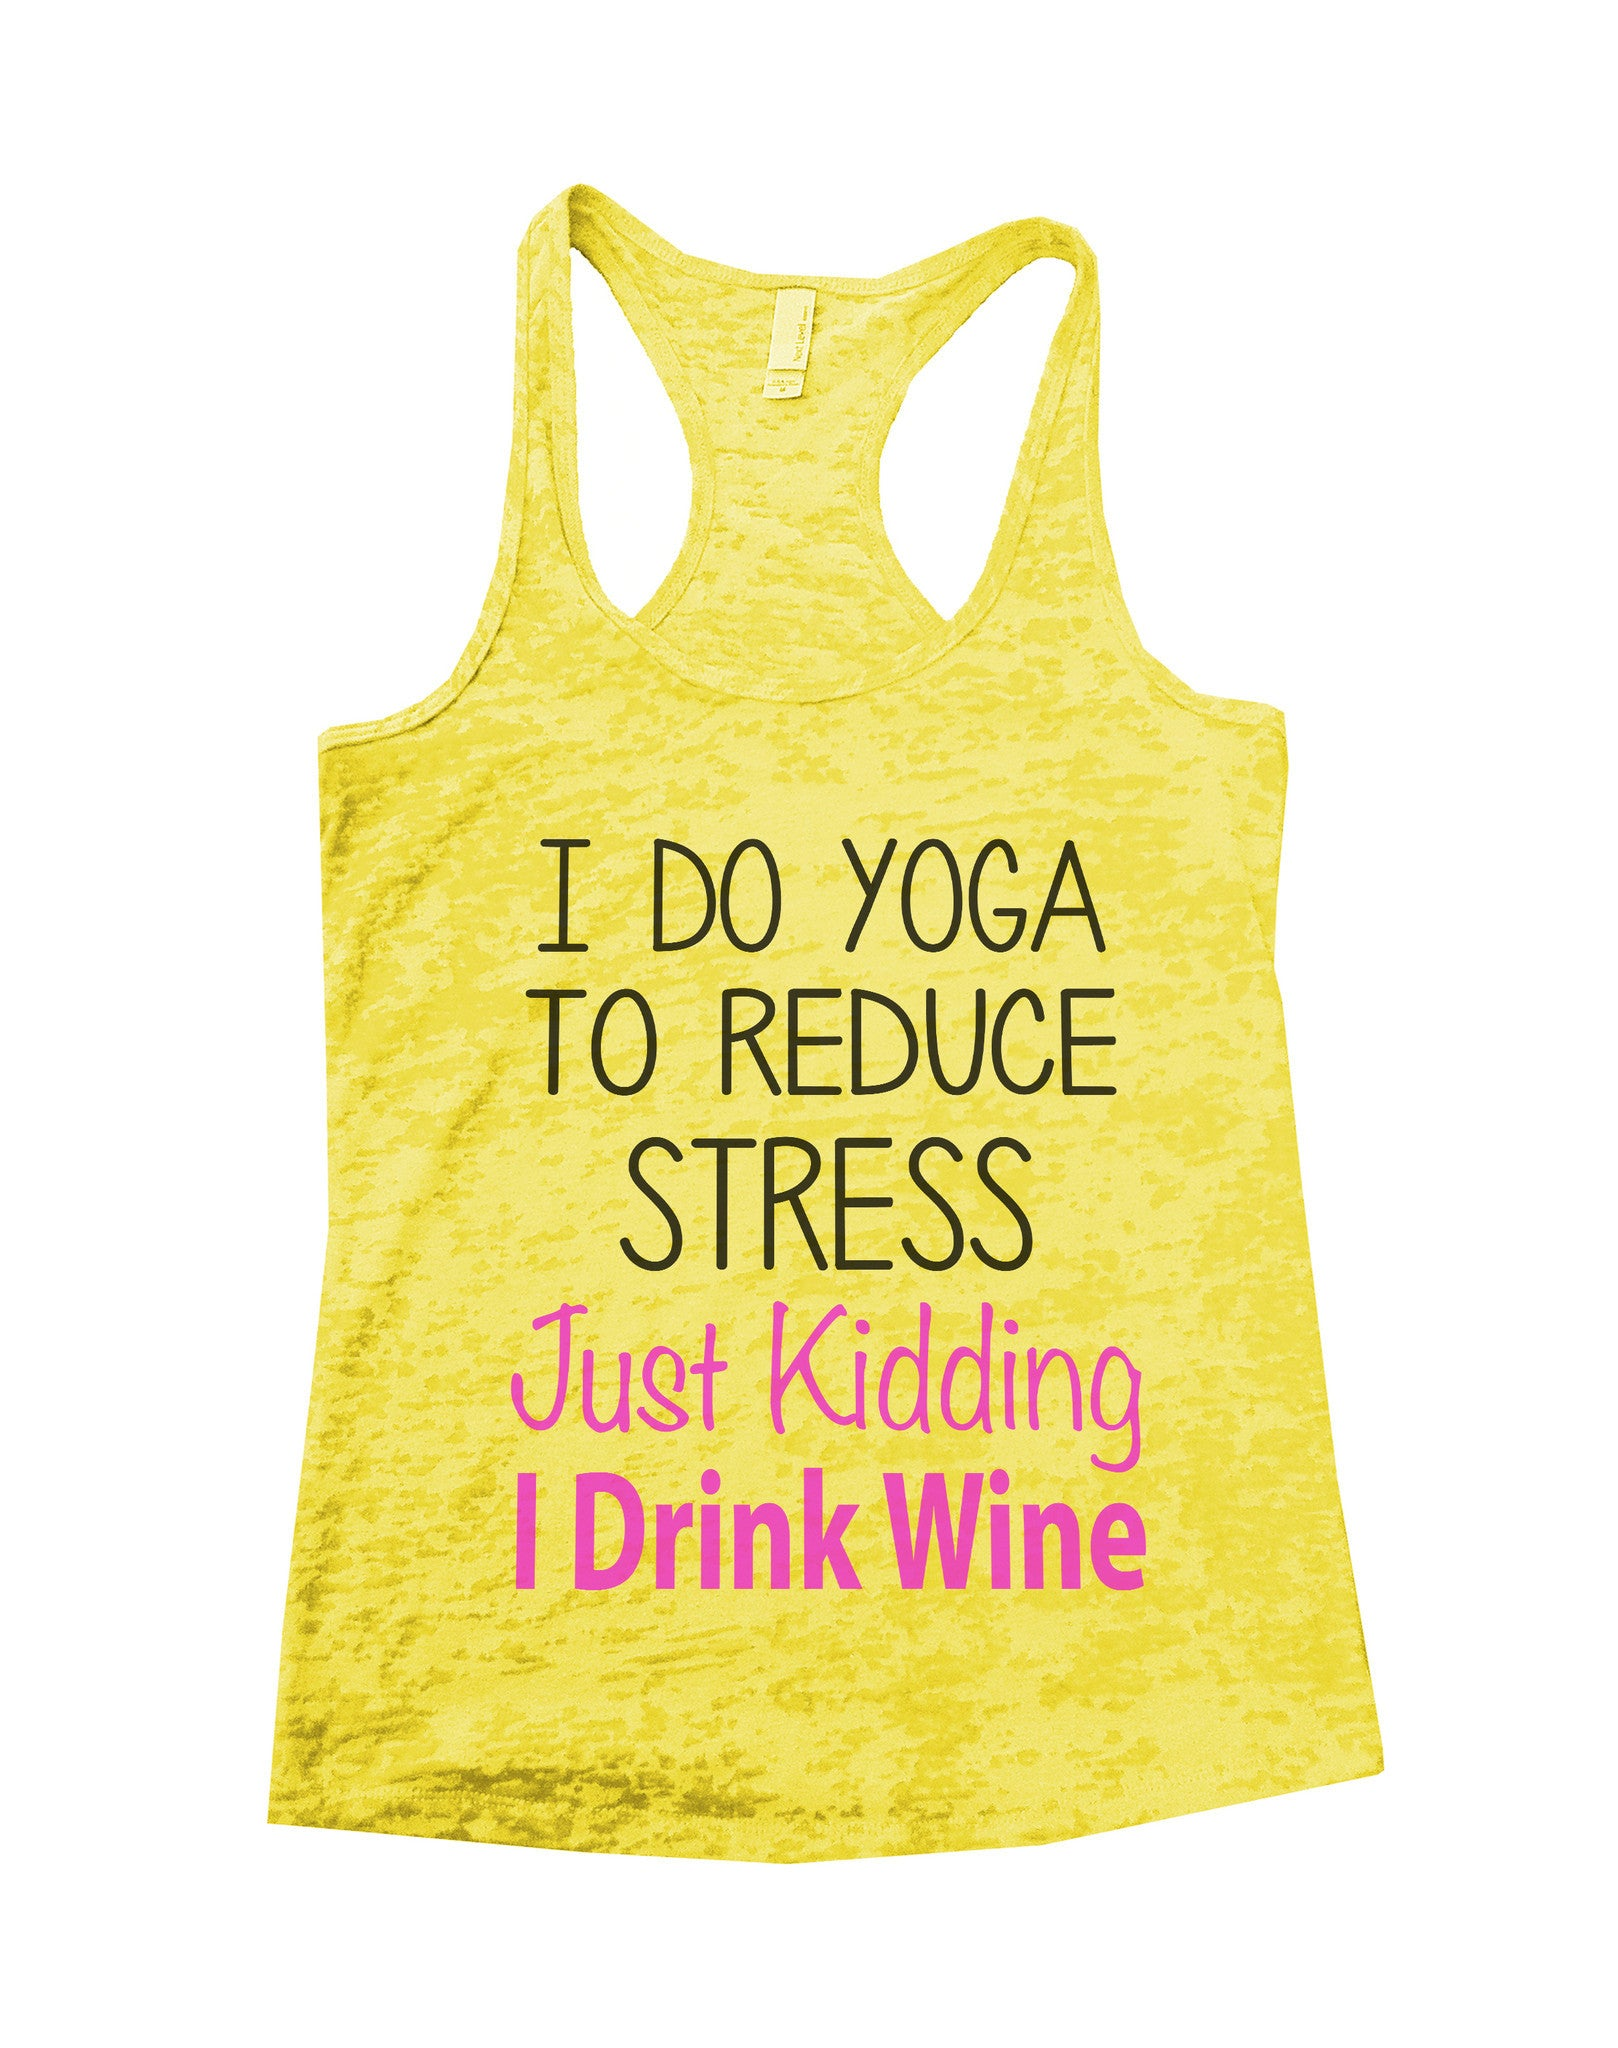 I Do Yoga To Reduce Stress Just Kidding I Drink Wine Burnout Tank Top By BurnoutTankTops.com - 627 - Funny Shirts Tank Tops Burnouts and Triblends  - 6